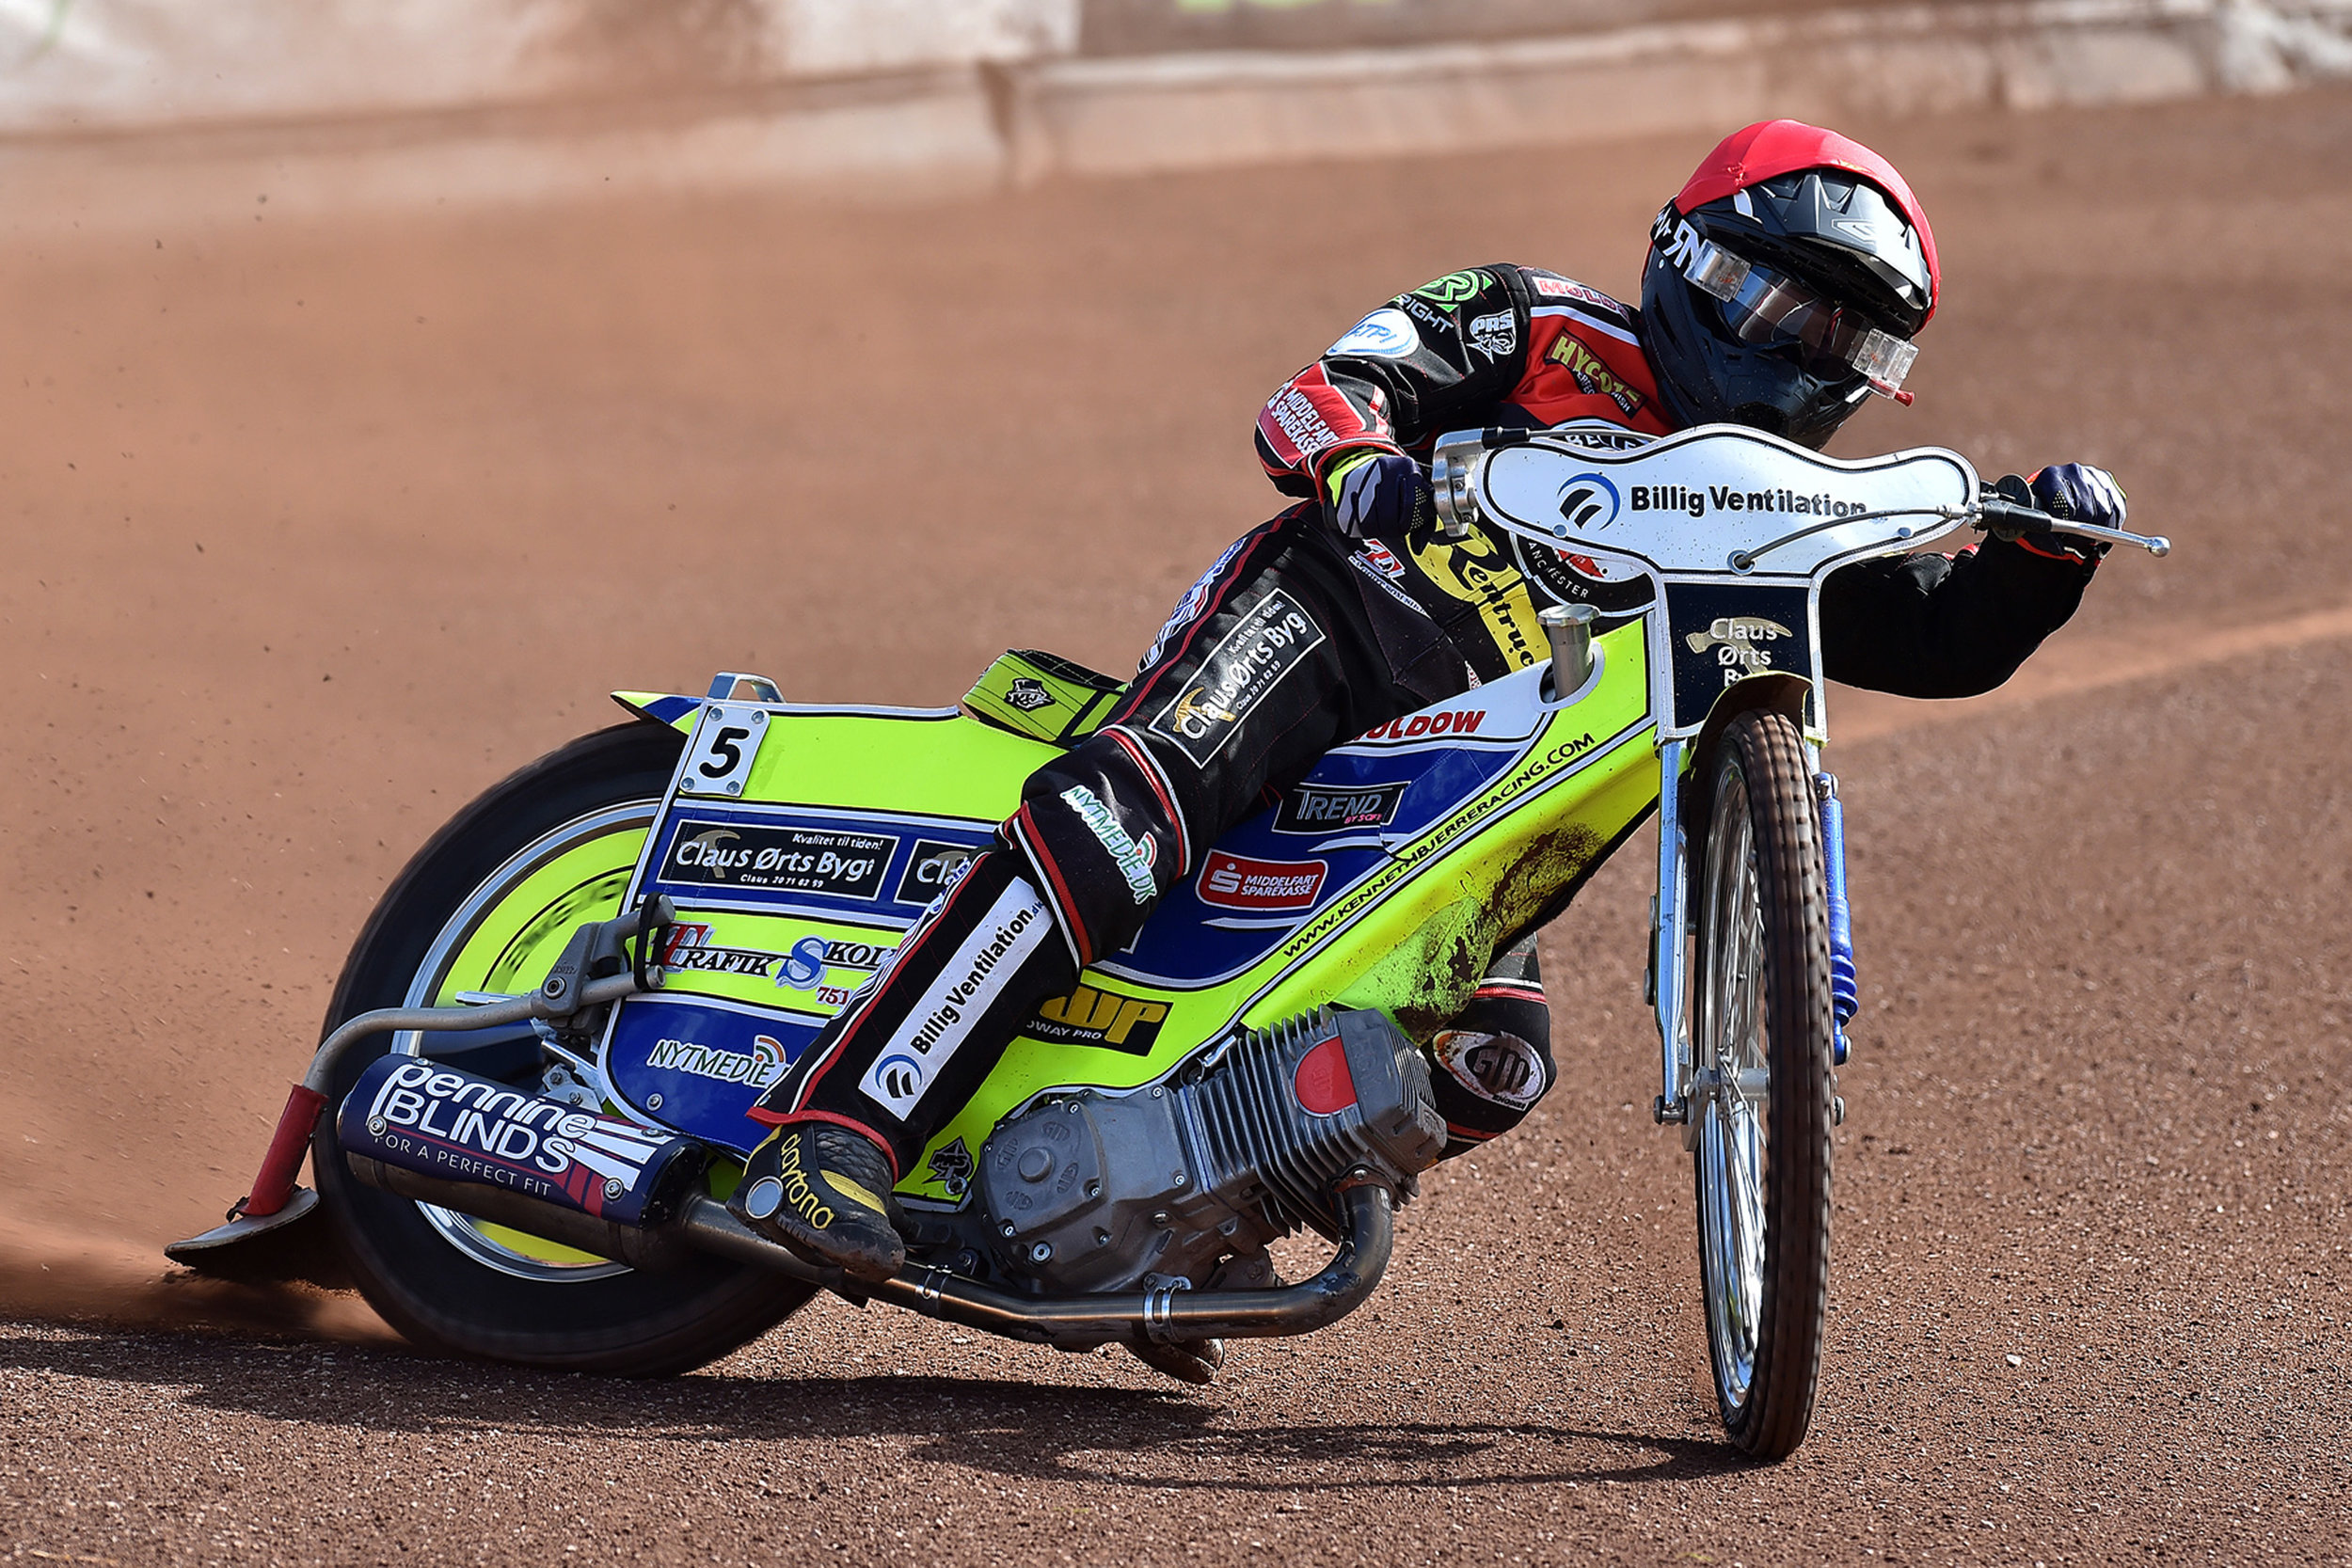 Kenneth Bjerre top scored against his former club with 9+1